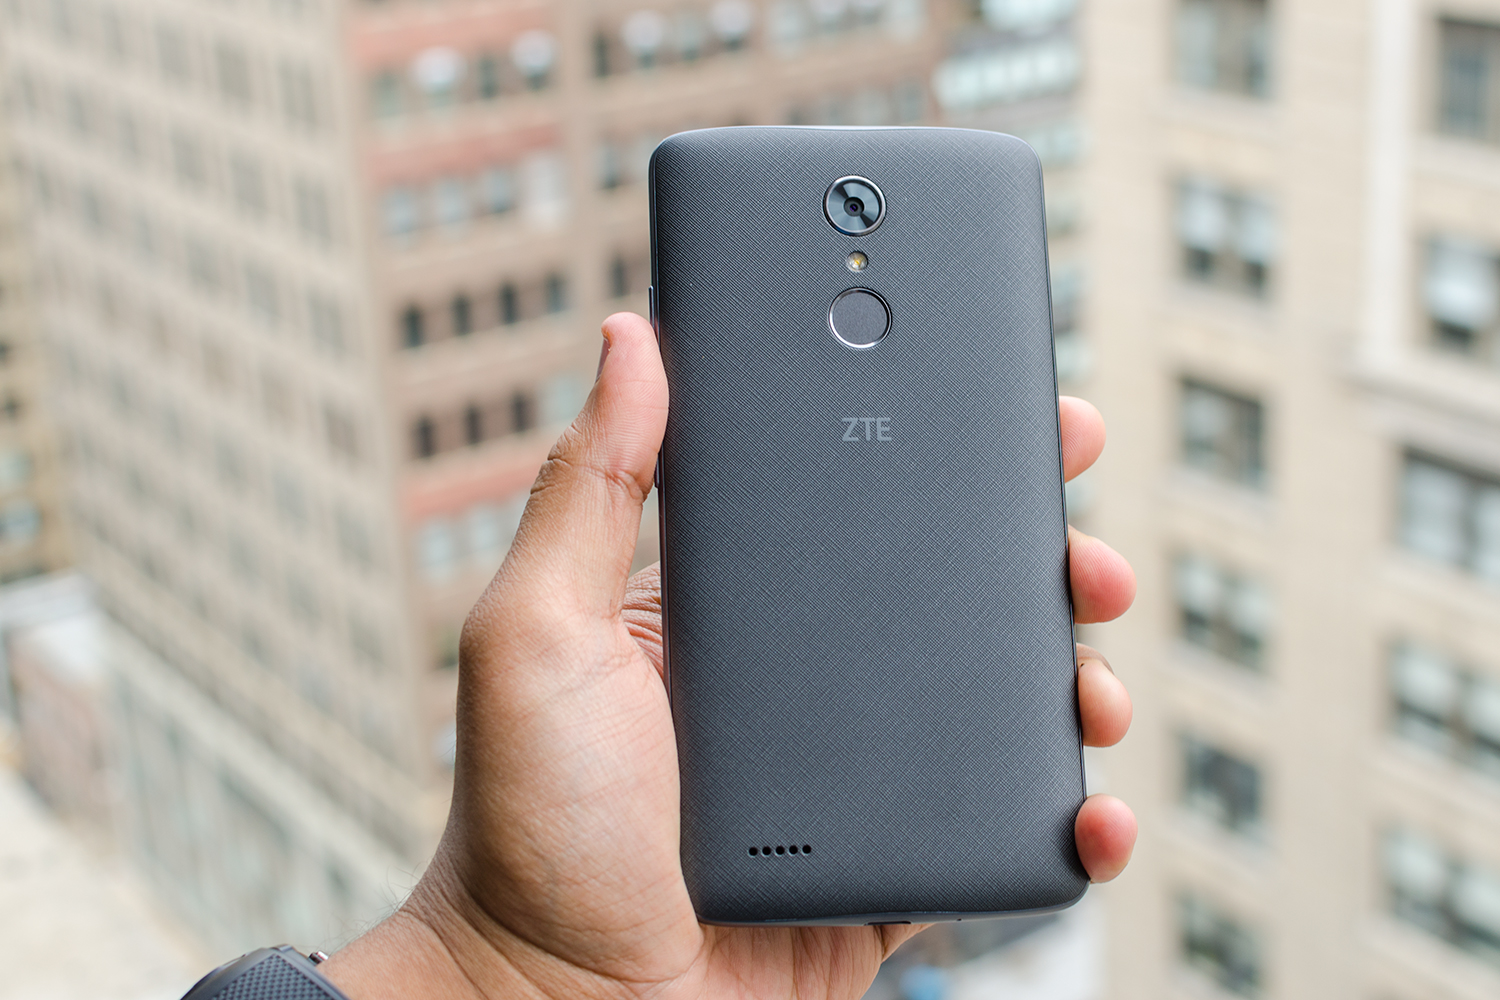 zte max xl review it 39 s a big phone for 100 but it stretches too far digital trends. Black Bedroom Furniture Sets. Home Design Ideas